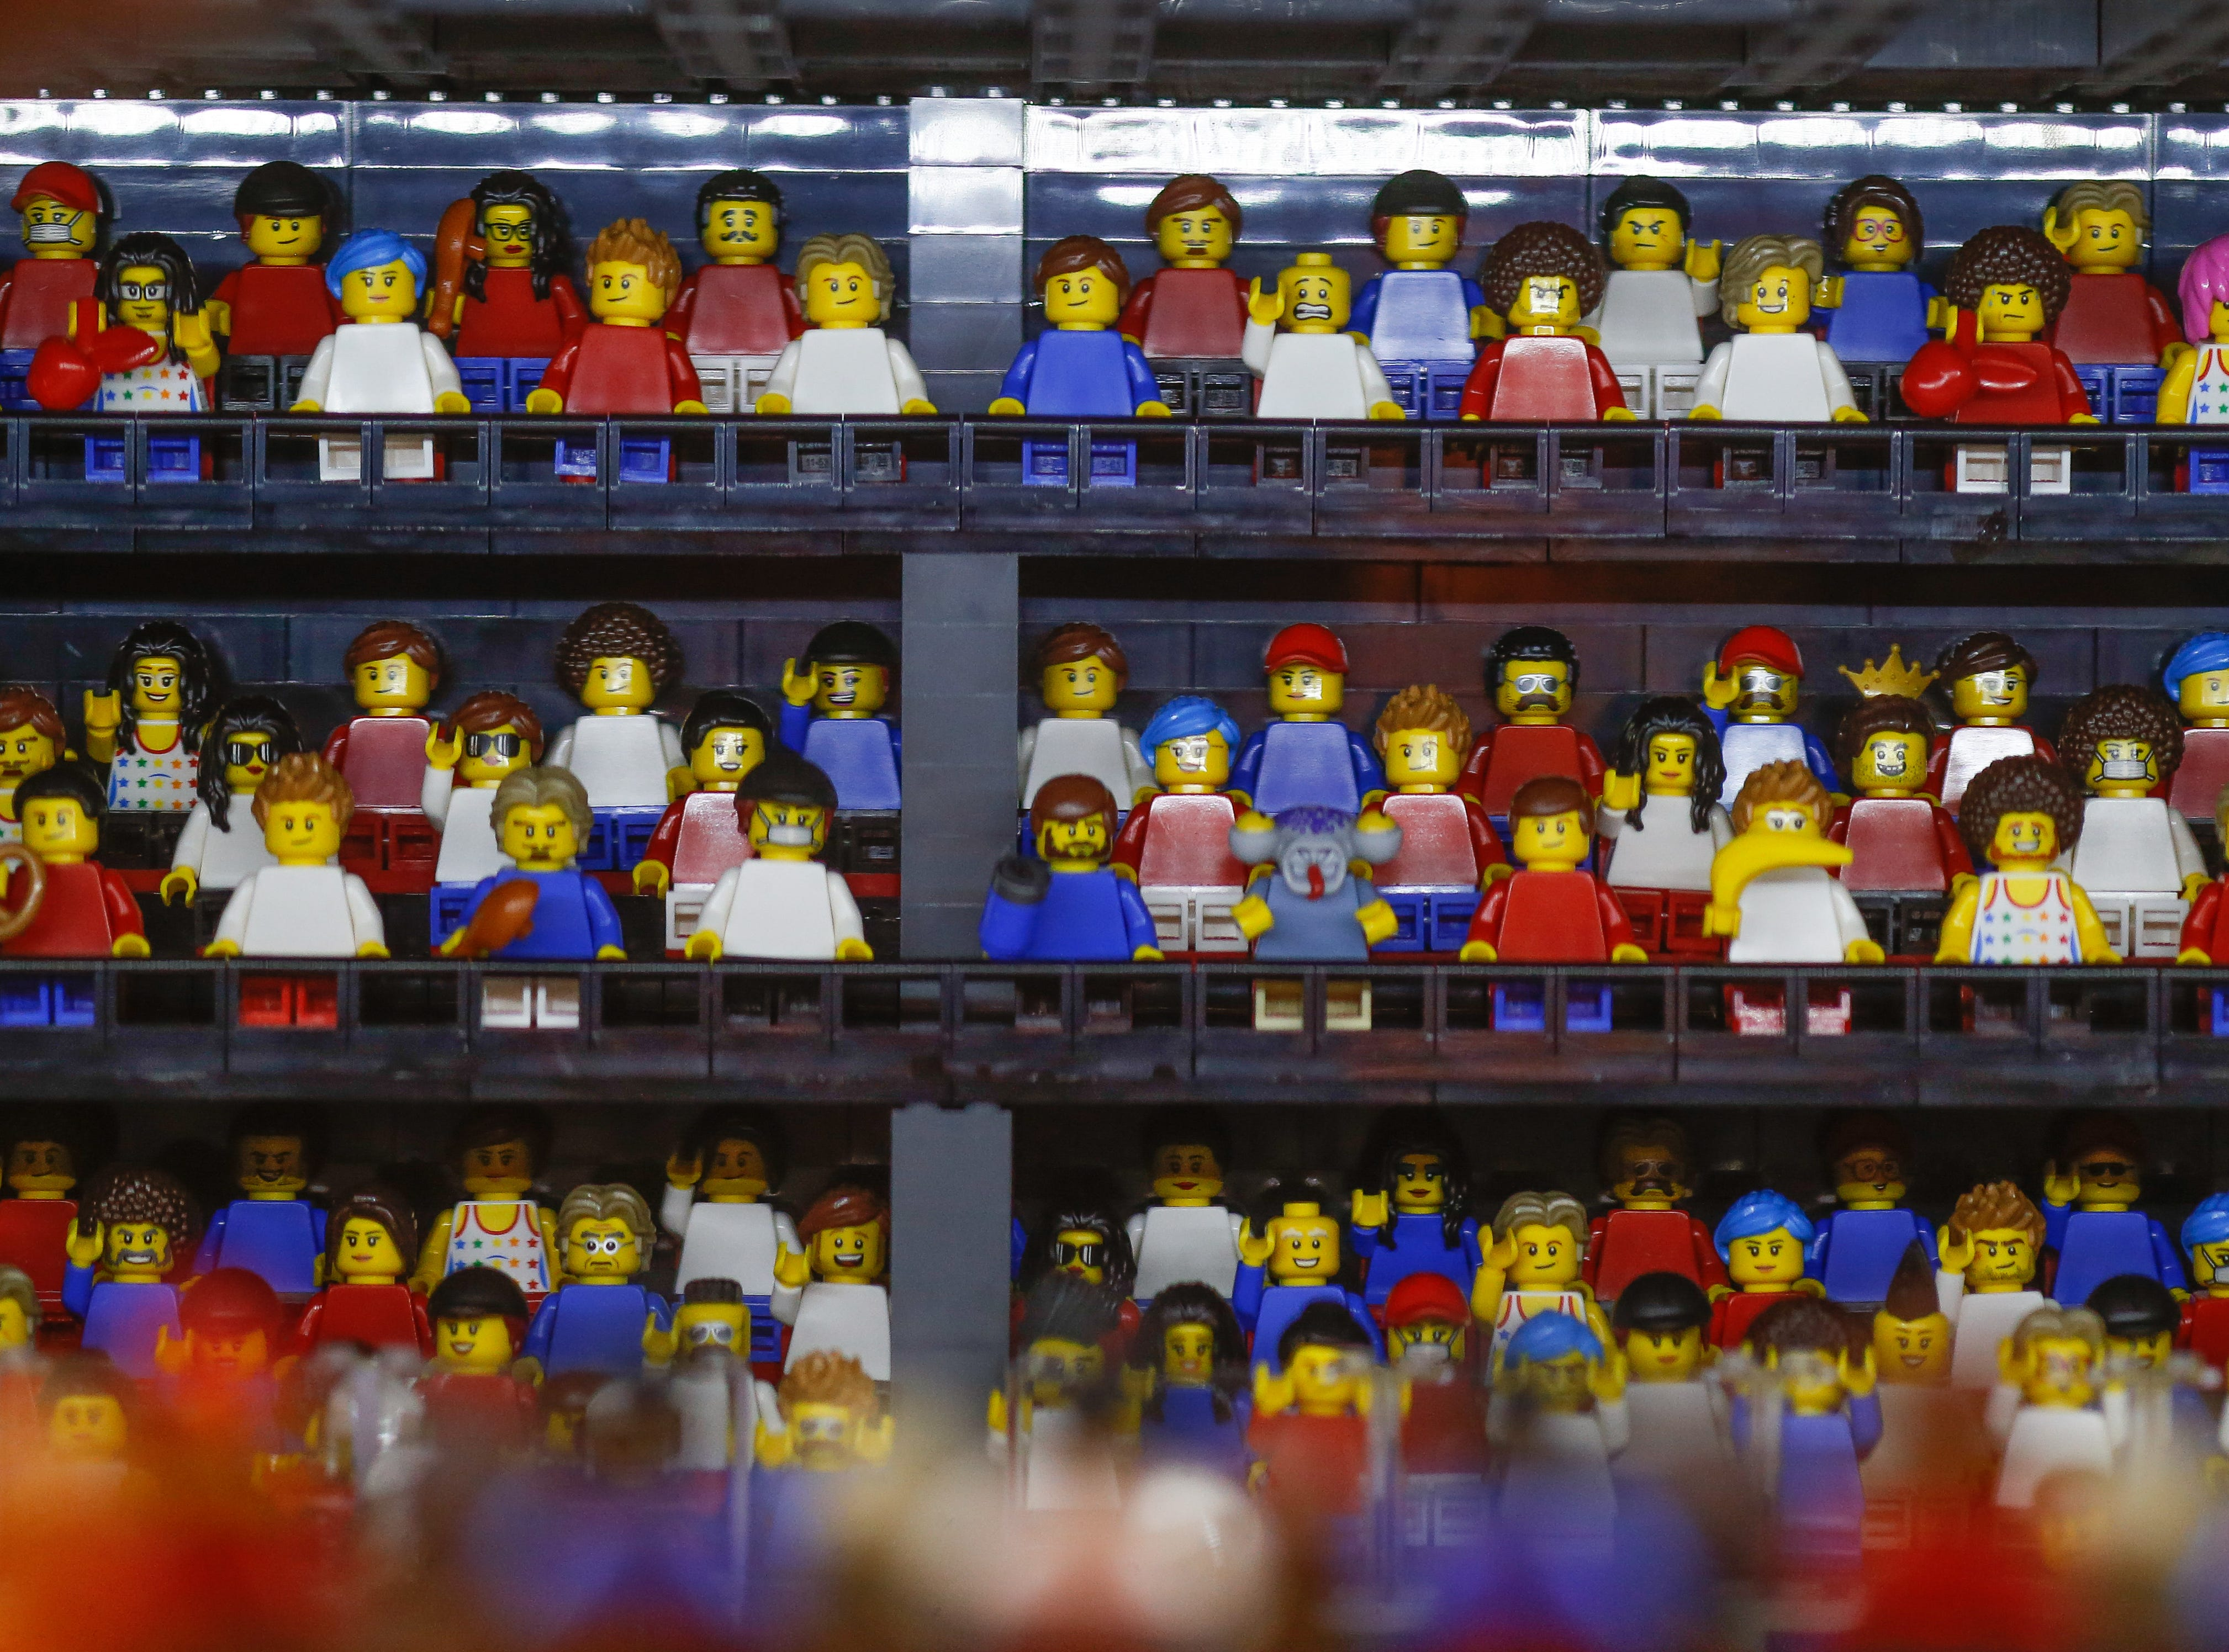 A view of the varying reactions of fans watching the game. The model features more than 600 LEGO mini-figures.